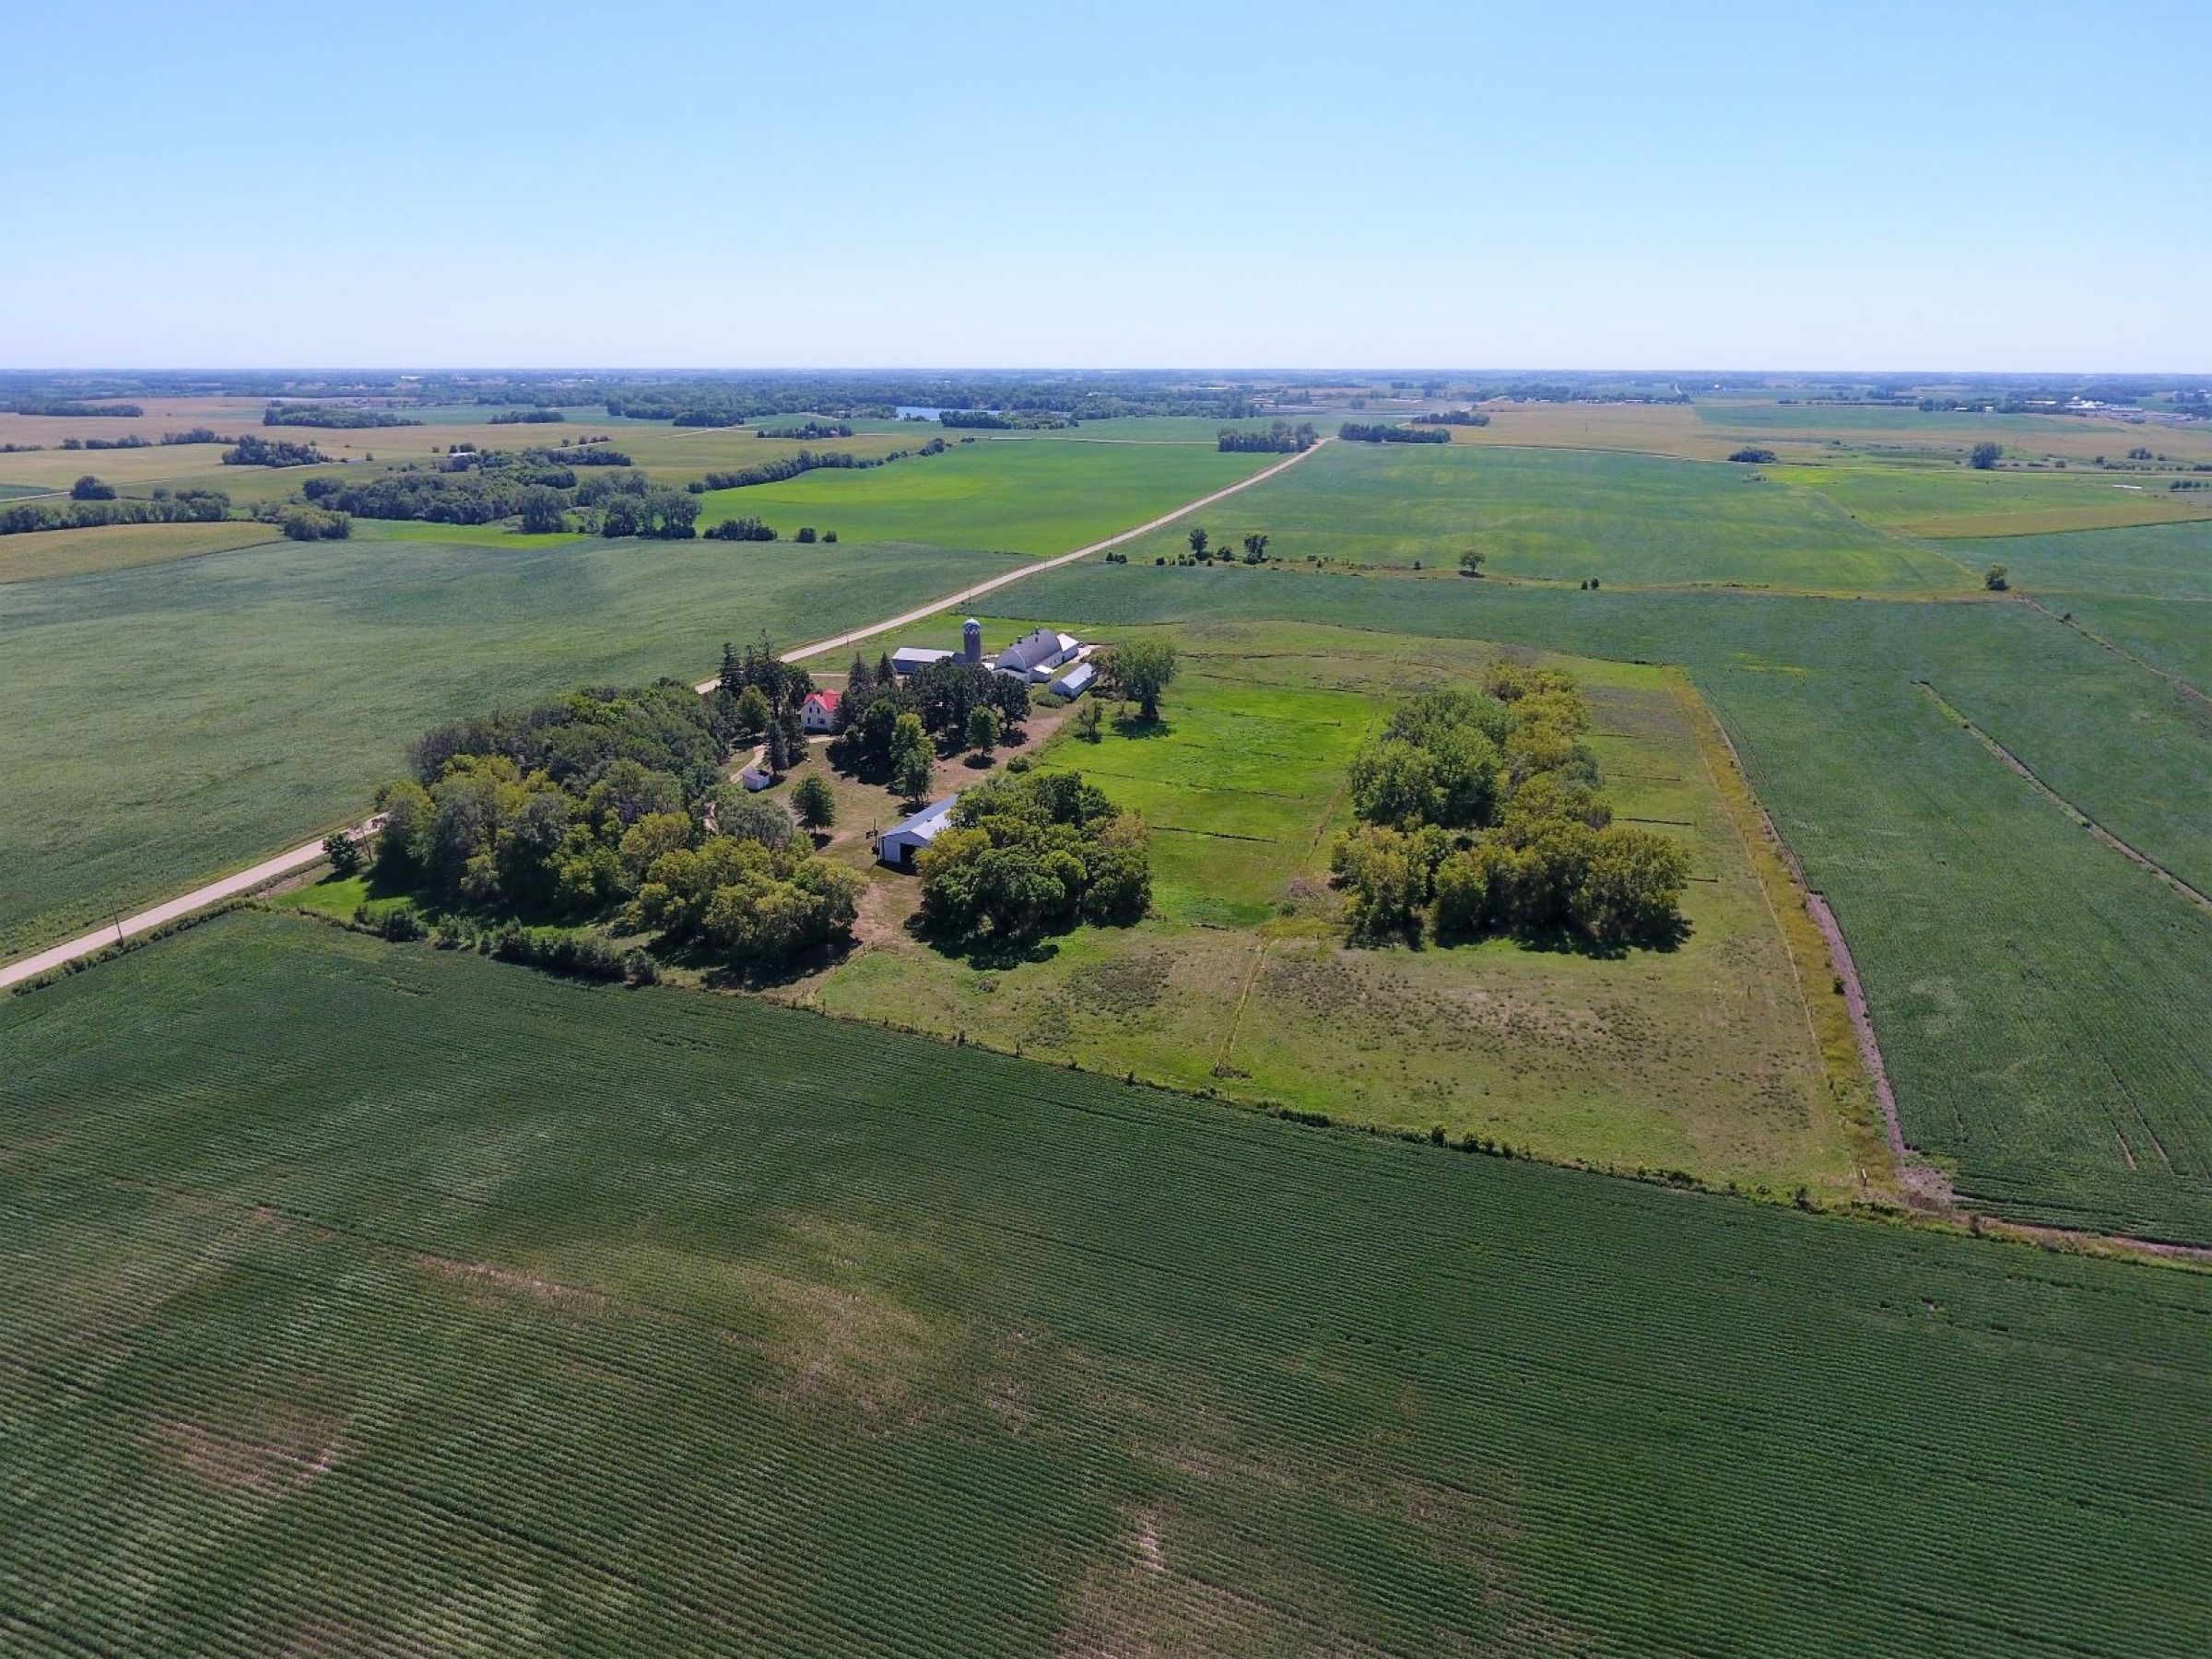 residential-wright-county-minnesota-0-acres-listing-number-15779-2-2021-09-28-001105.JPG